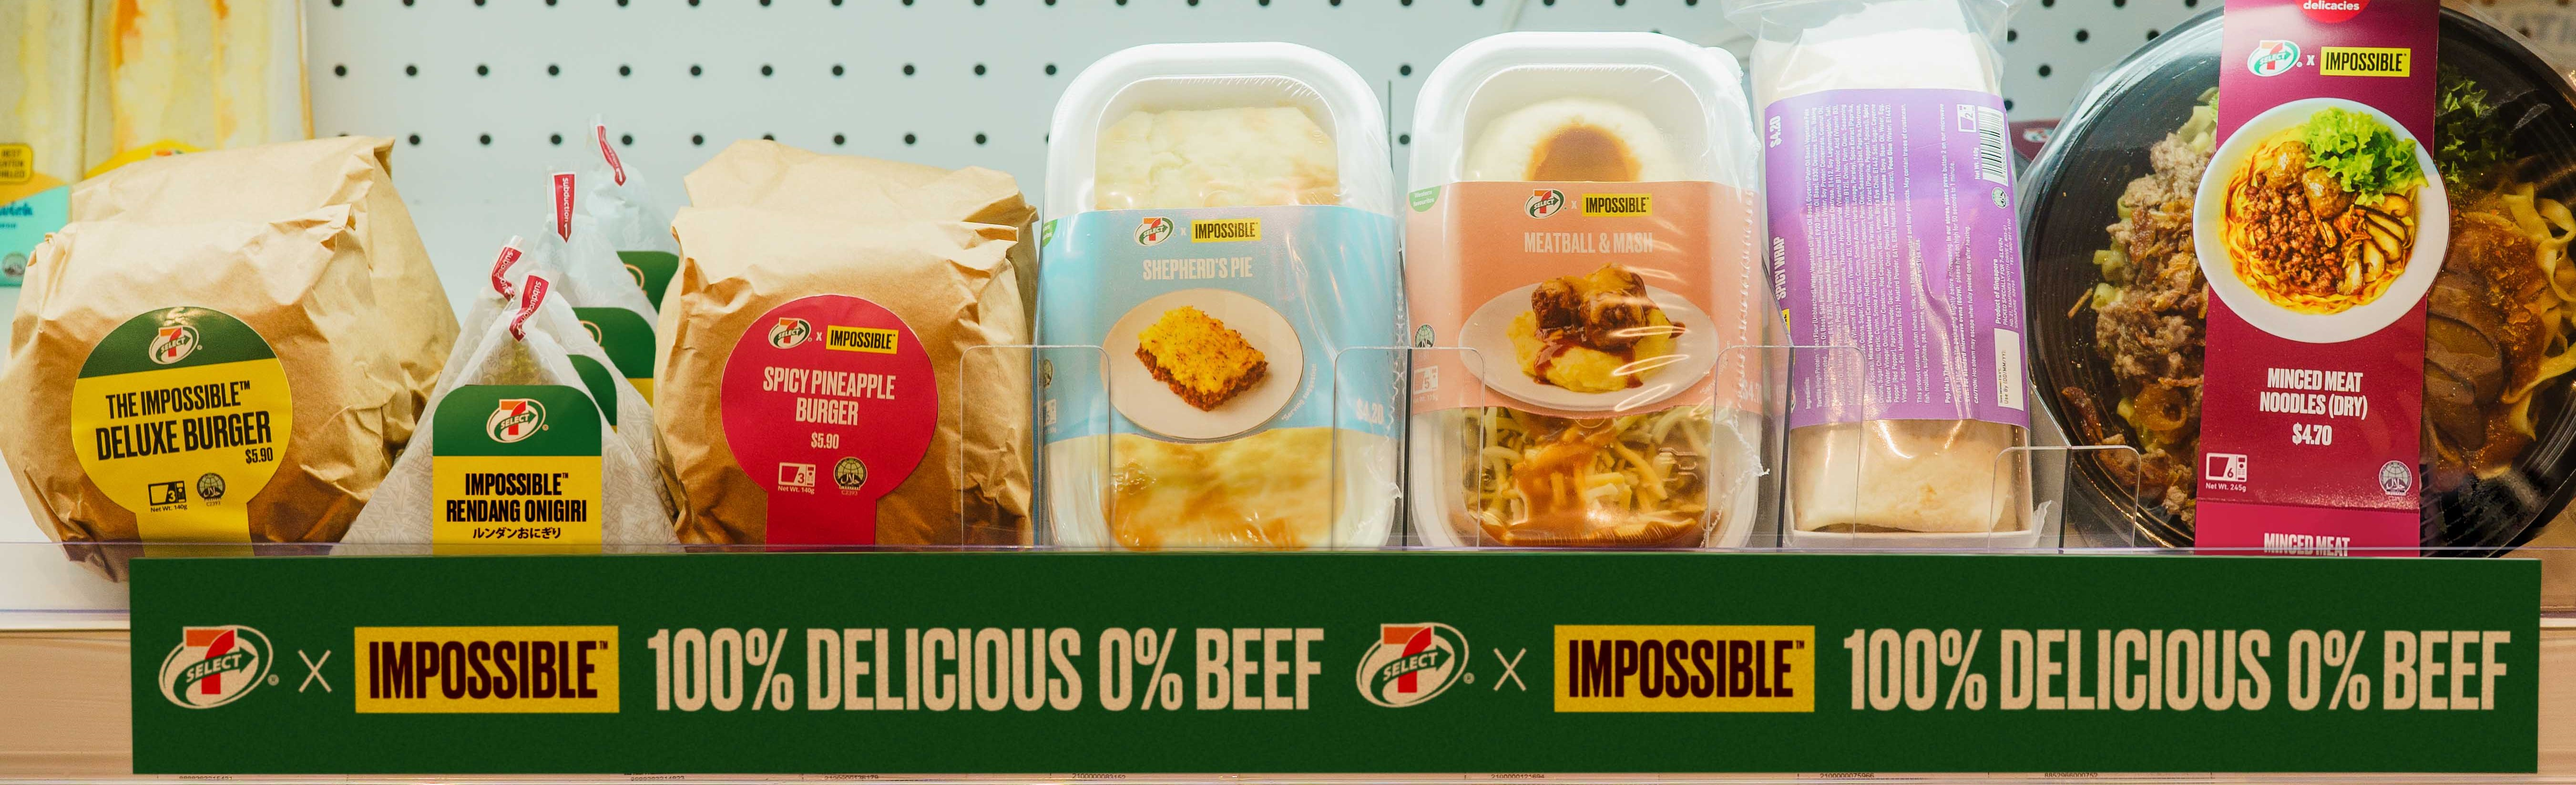 7-Eleven Singapore Launches Range Of Six New Ready-To-Eat  Meals Made With ImpossibleTM Beef